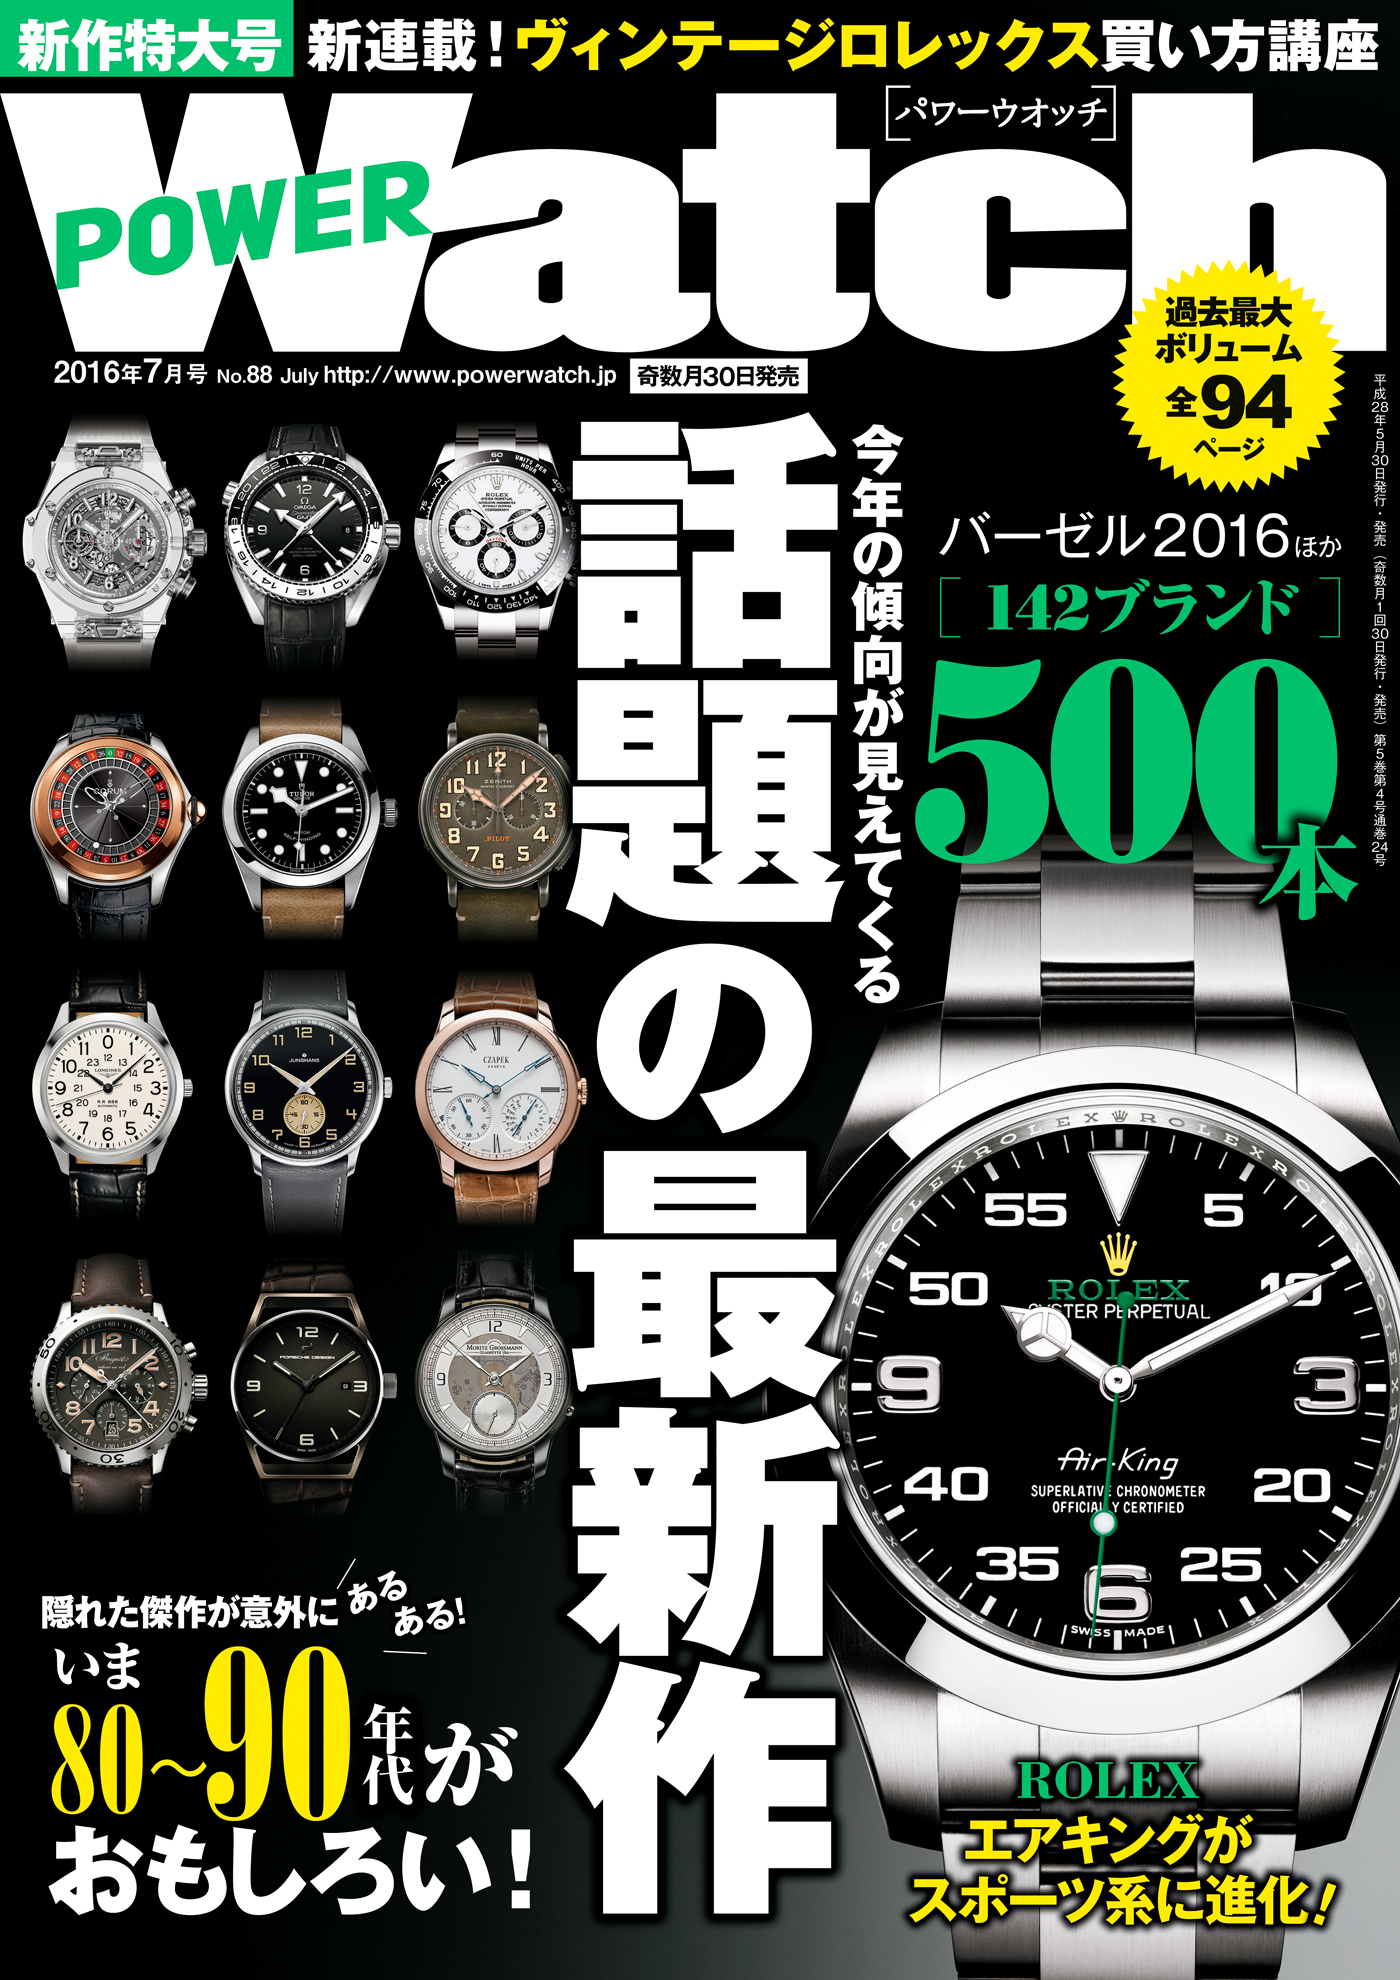 C's-Factory|電子書籍|POWER Watch No.88